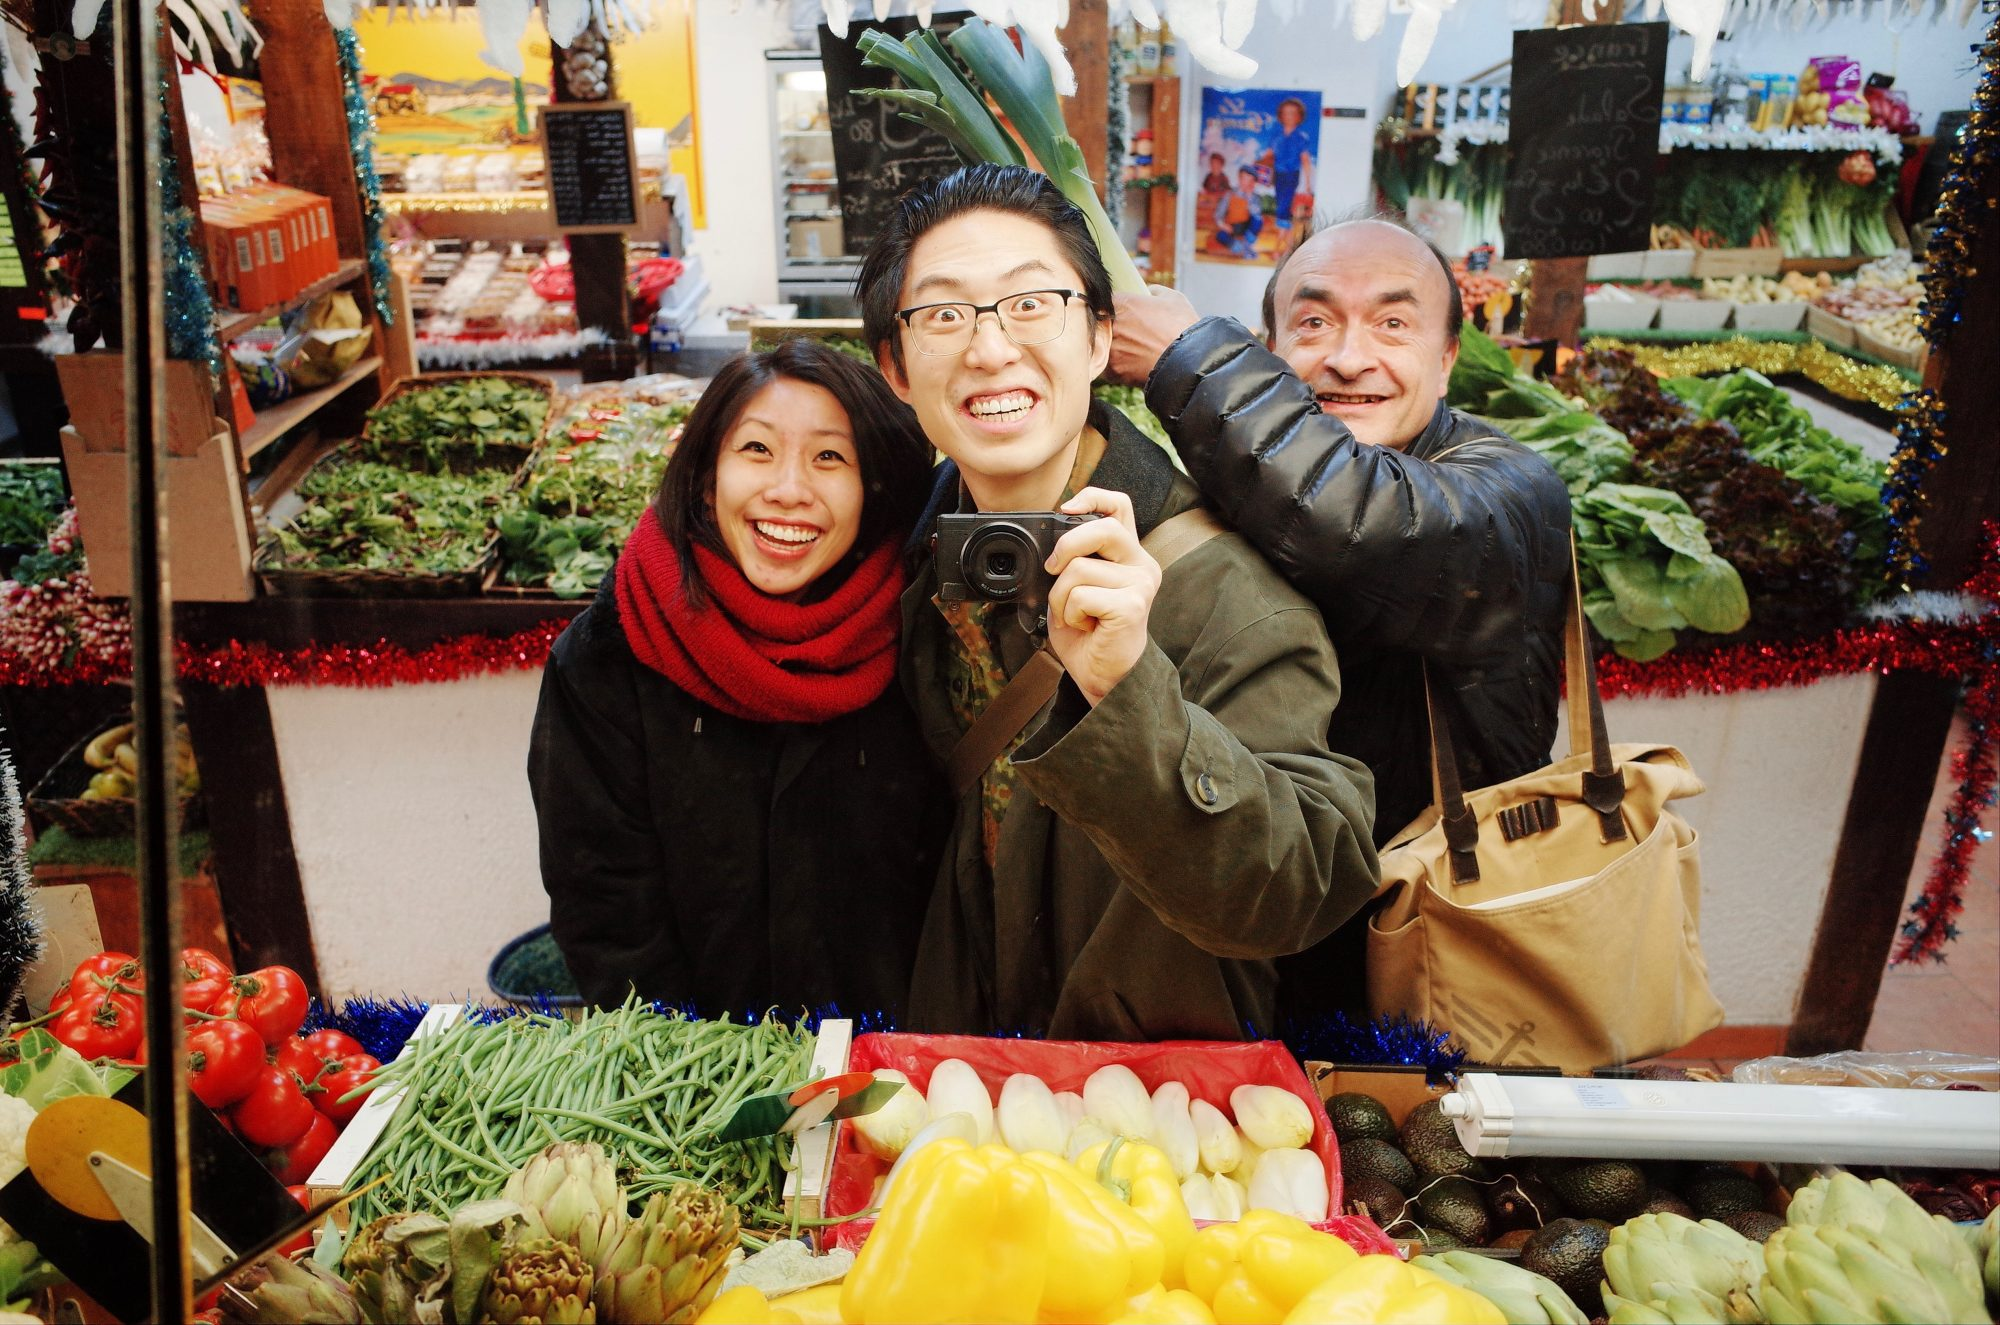 Selfie our Cindy and our friend at local market in Marseille